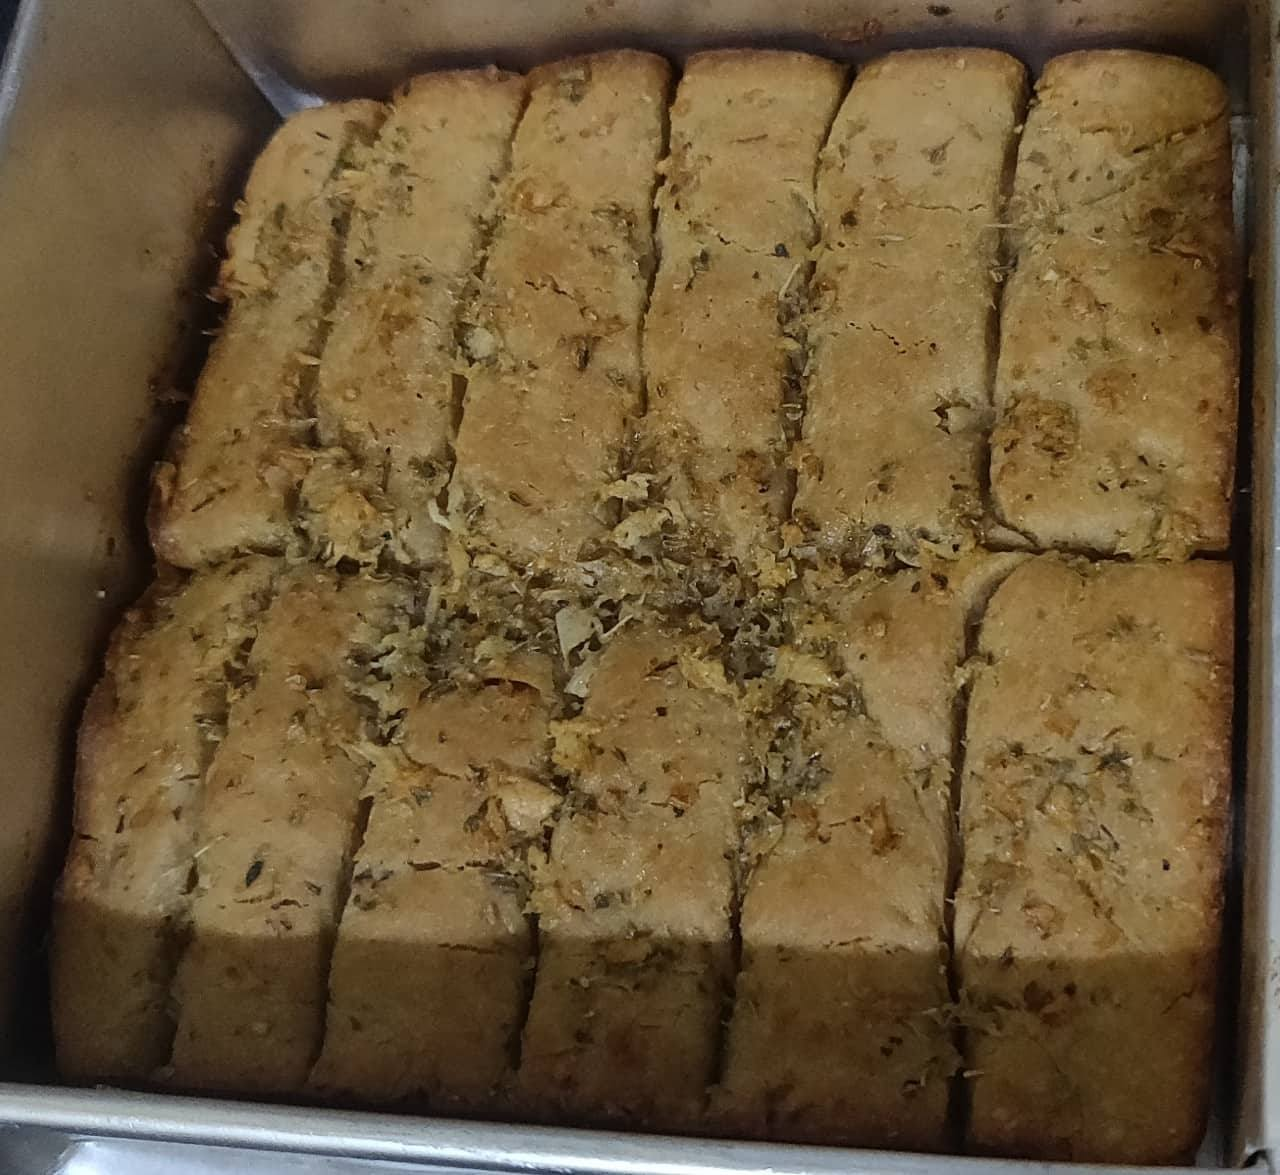 Garlic_bread_sticks - 55545390_1904536586323402_8138537957301682176_n.jpg